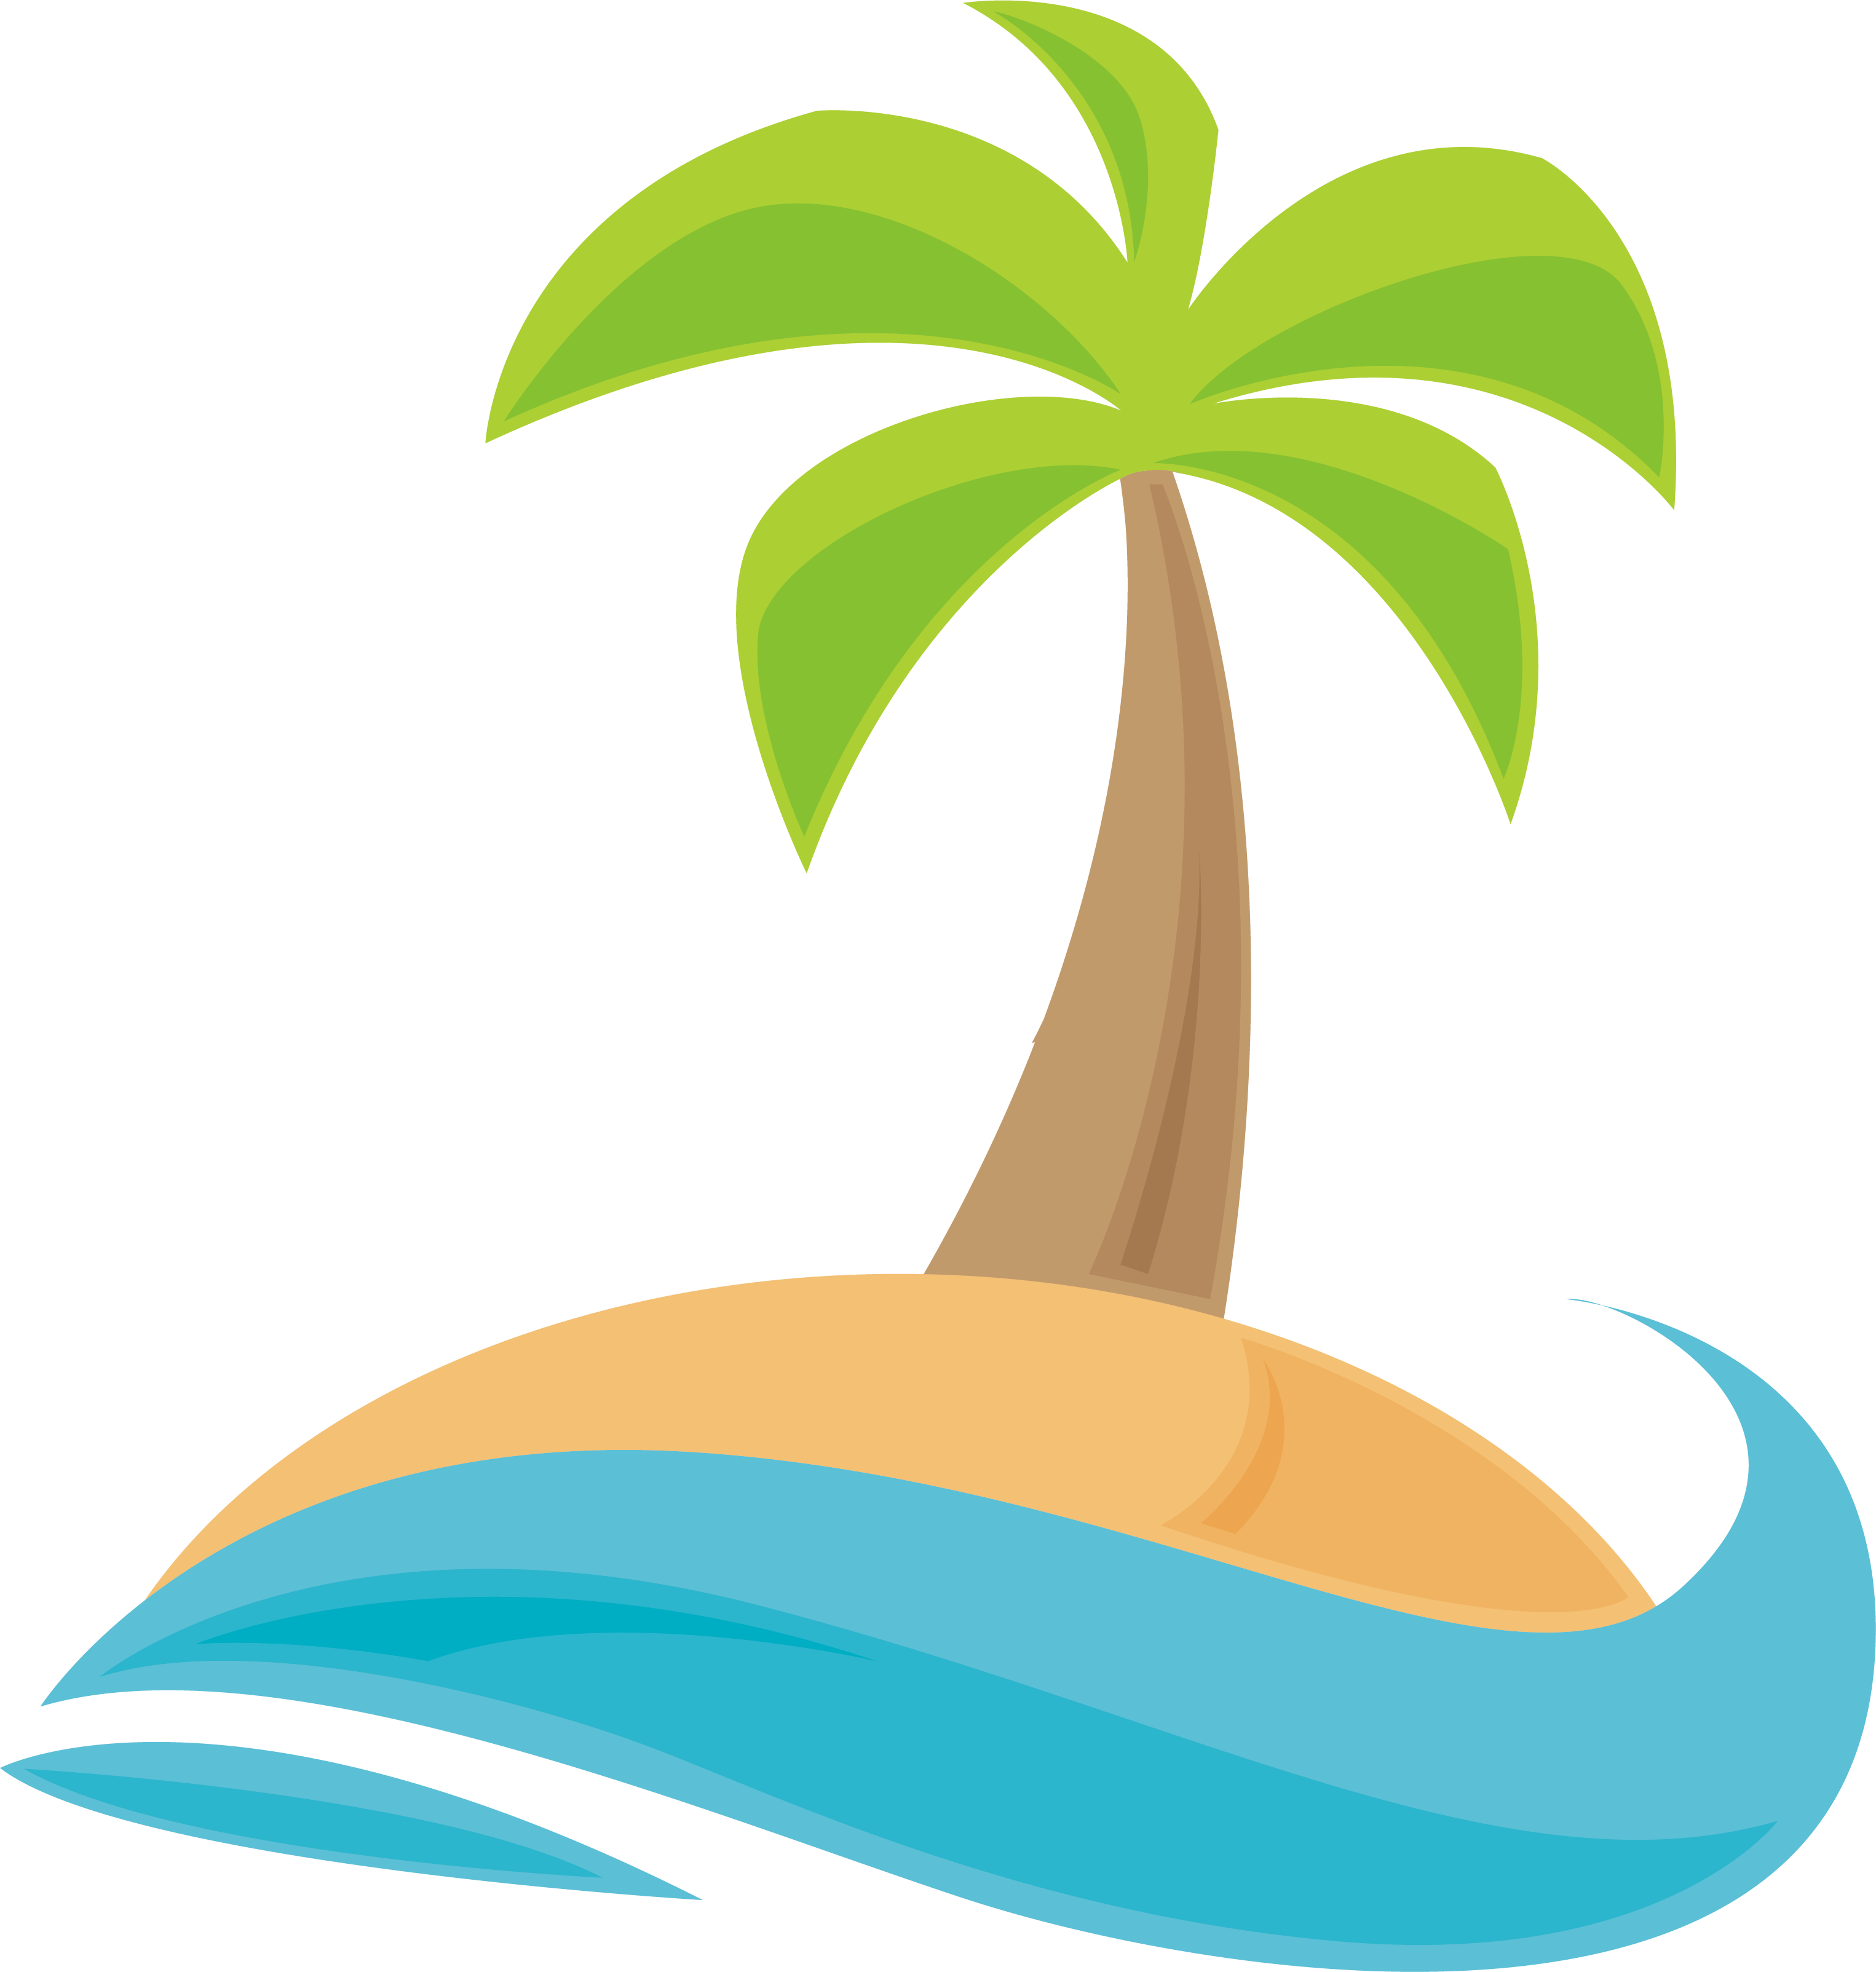 plants-clipart-coconut-tree-720197-4115869